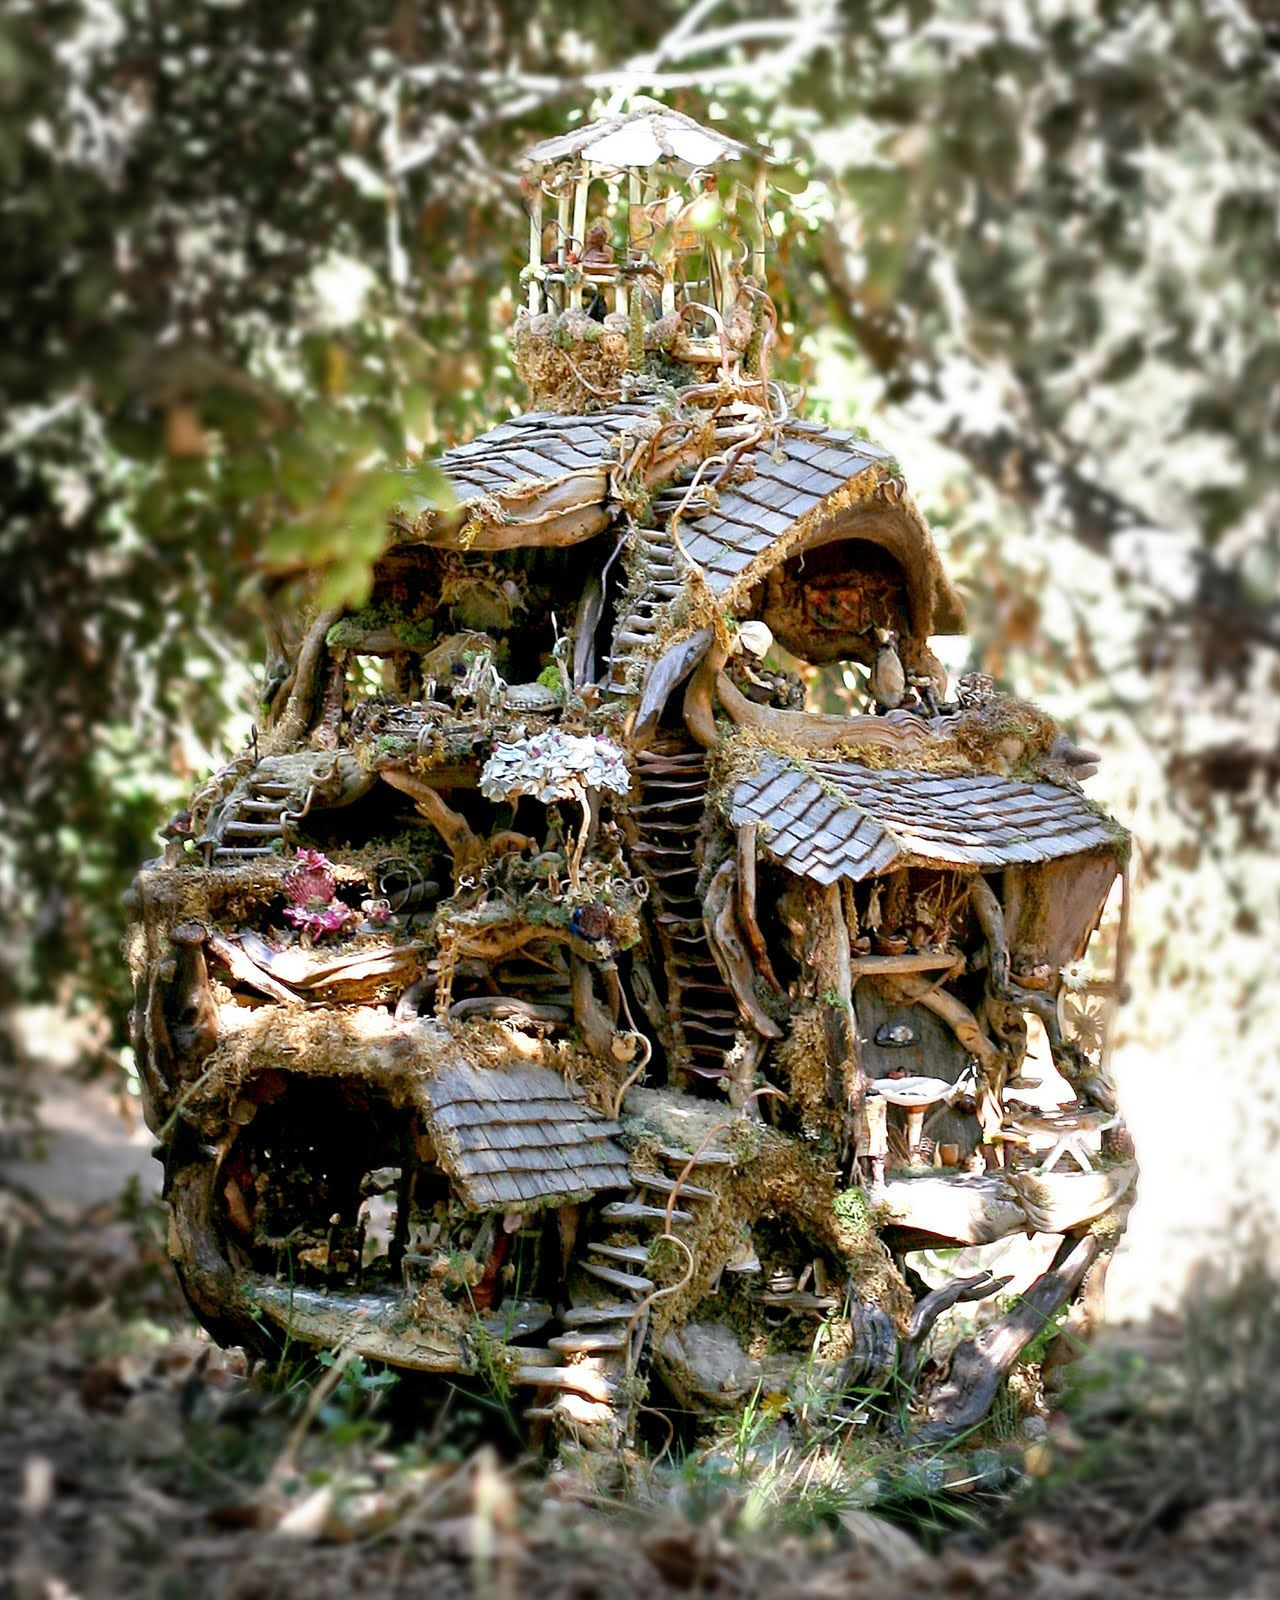 Enchanted fairy tree house here is a little faerie tree house linda - Items Similar To The Fairy Treehouse Beautiful Architectural Wonder Exhibited At The American Visionary Art Museum 1995 And 2012 On Etsy